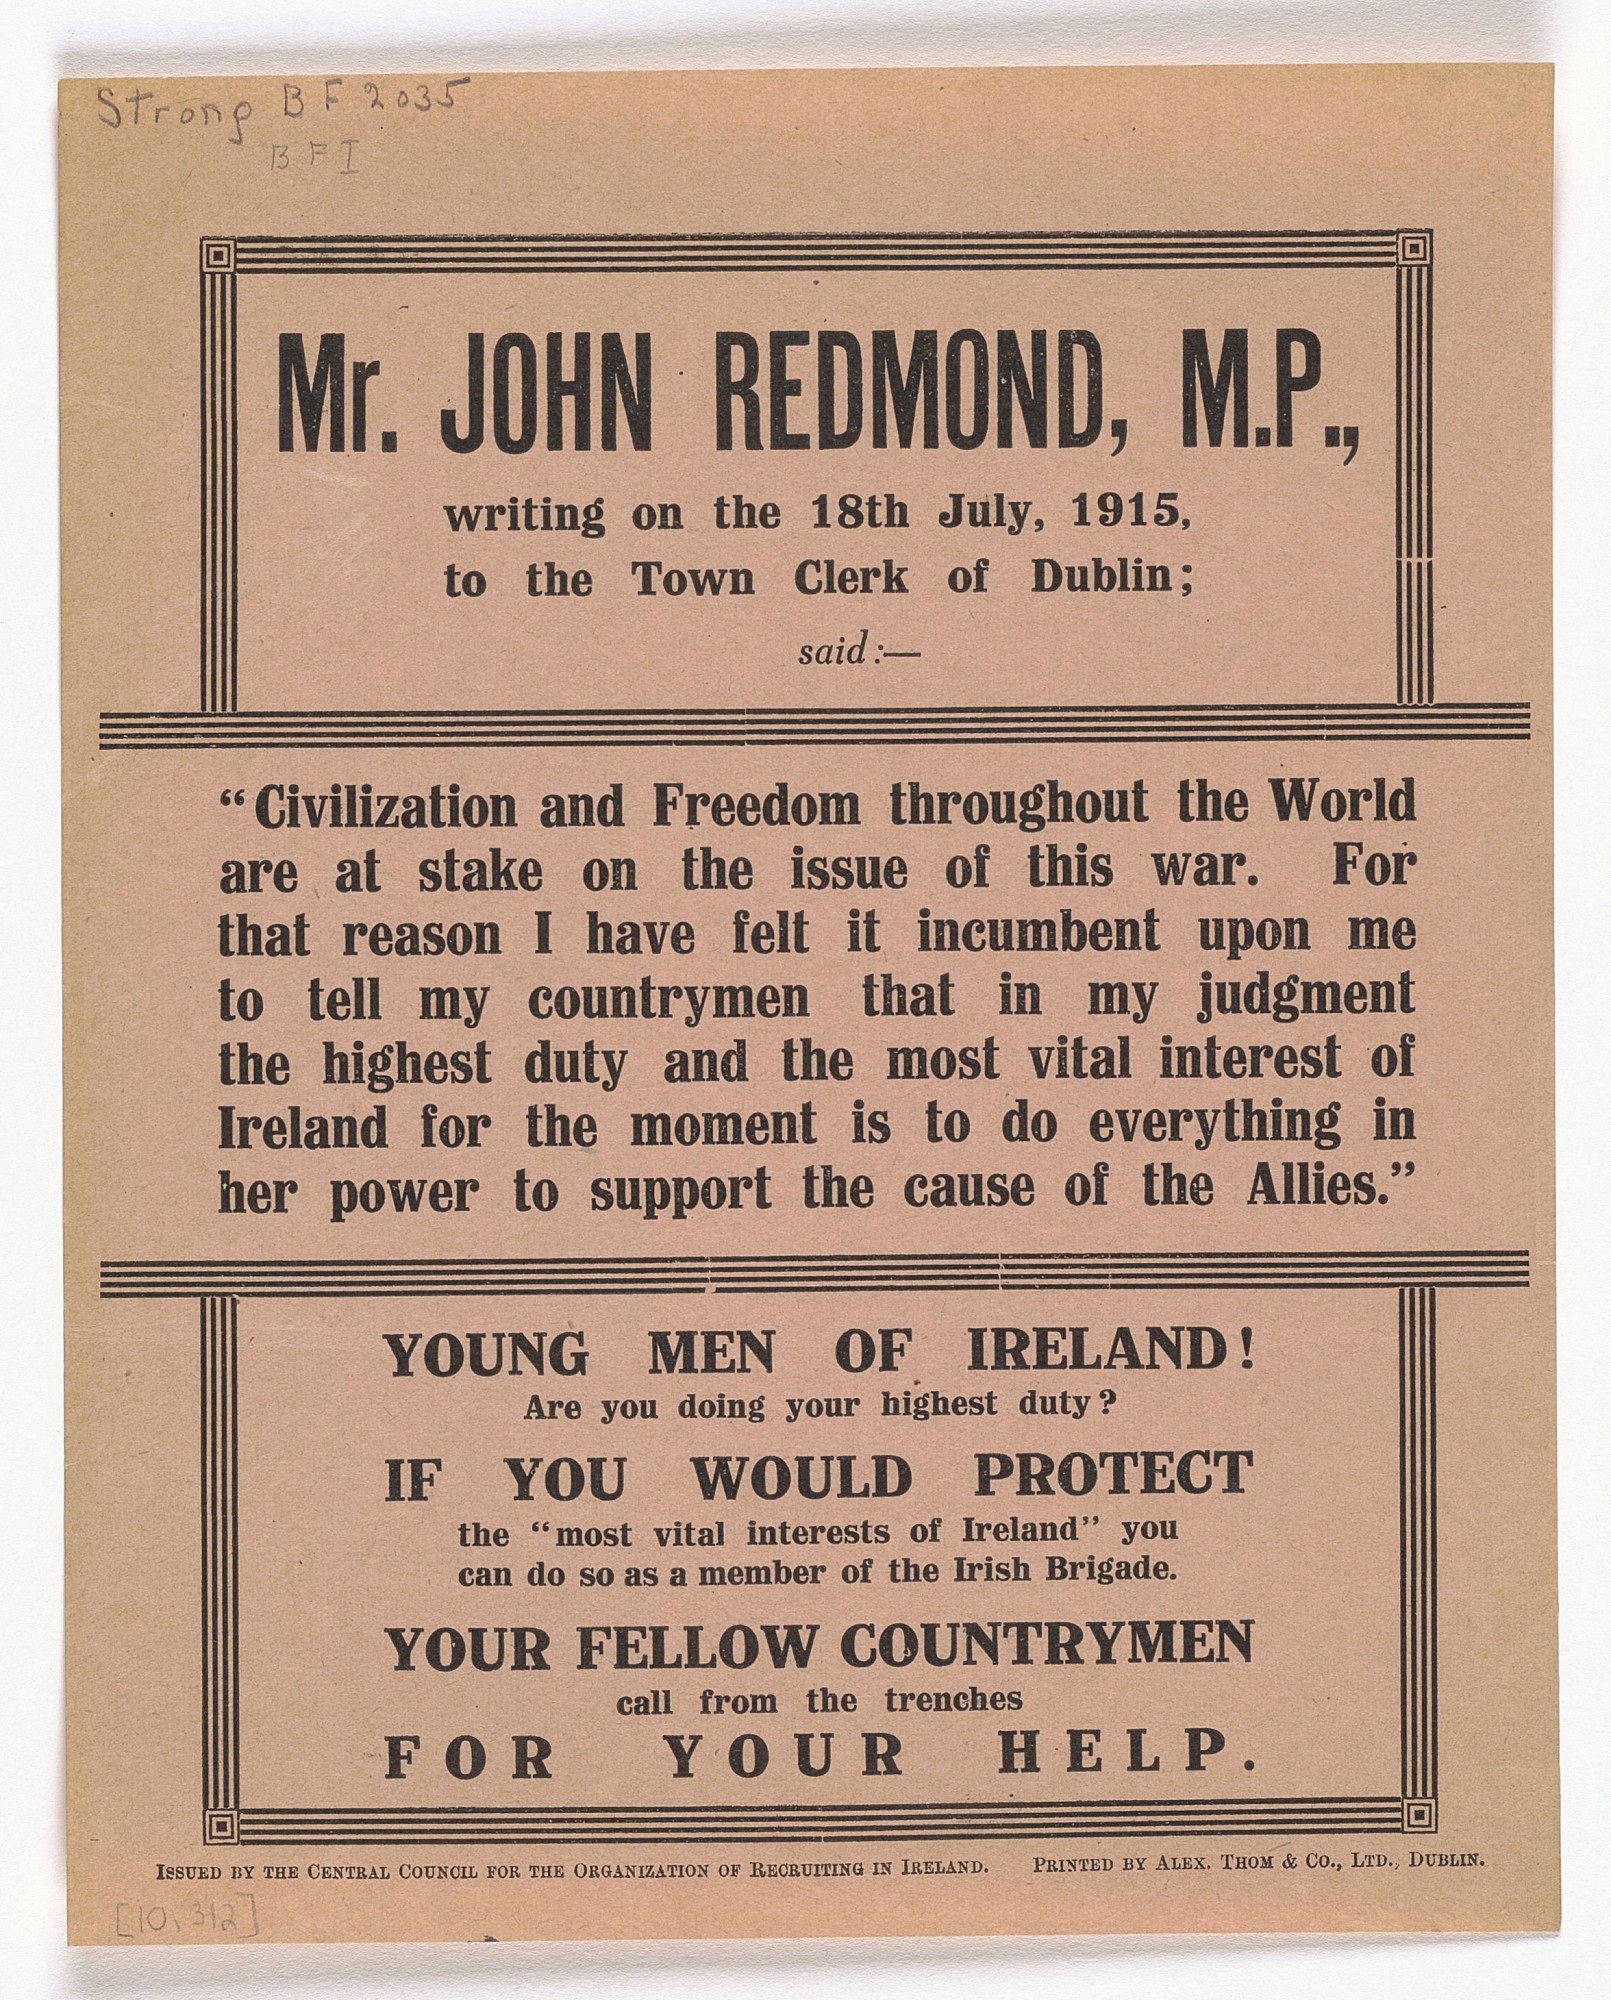 Mr. John Redmond, M.P., Writing on the 18th of July, 1915 ...